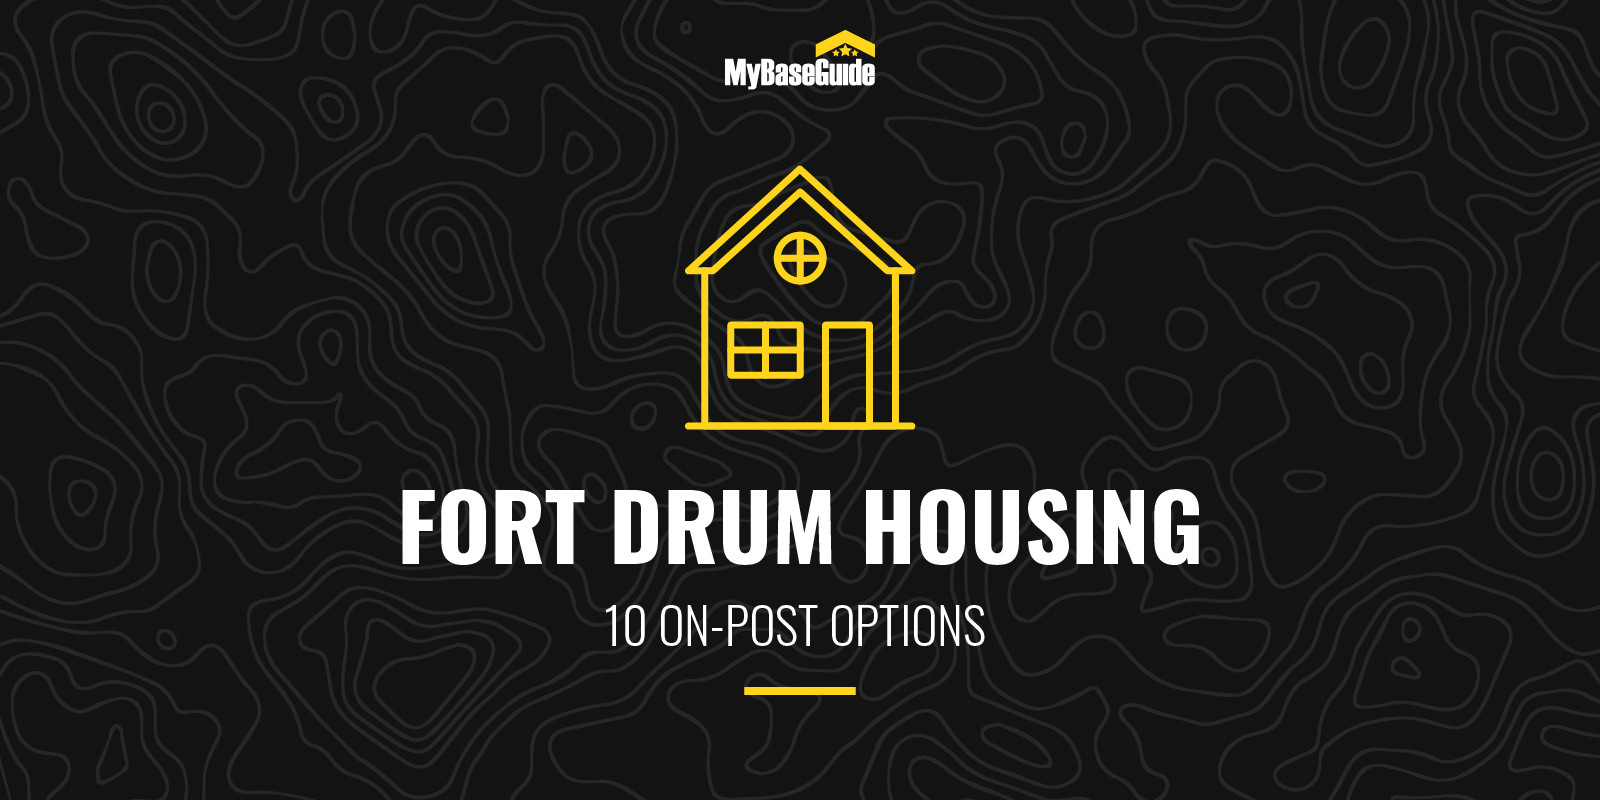 Fort Drum Housing: 10 On Post Options